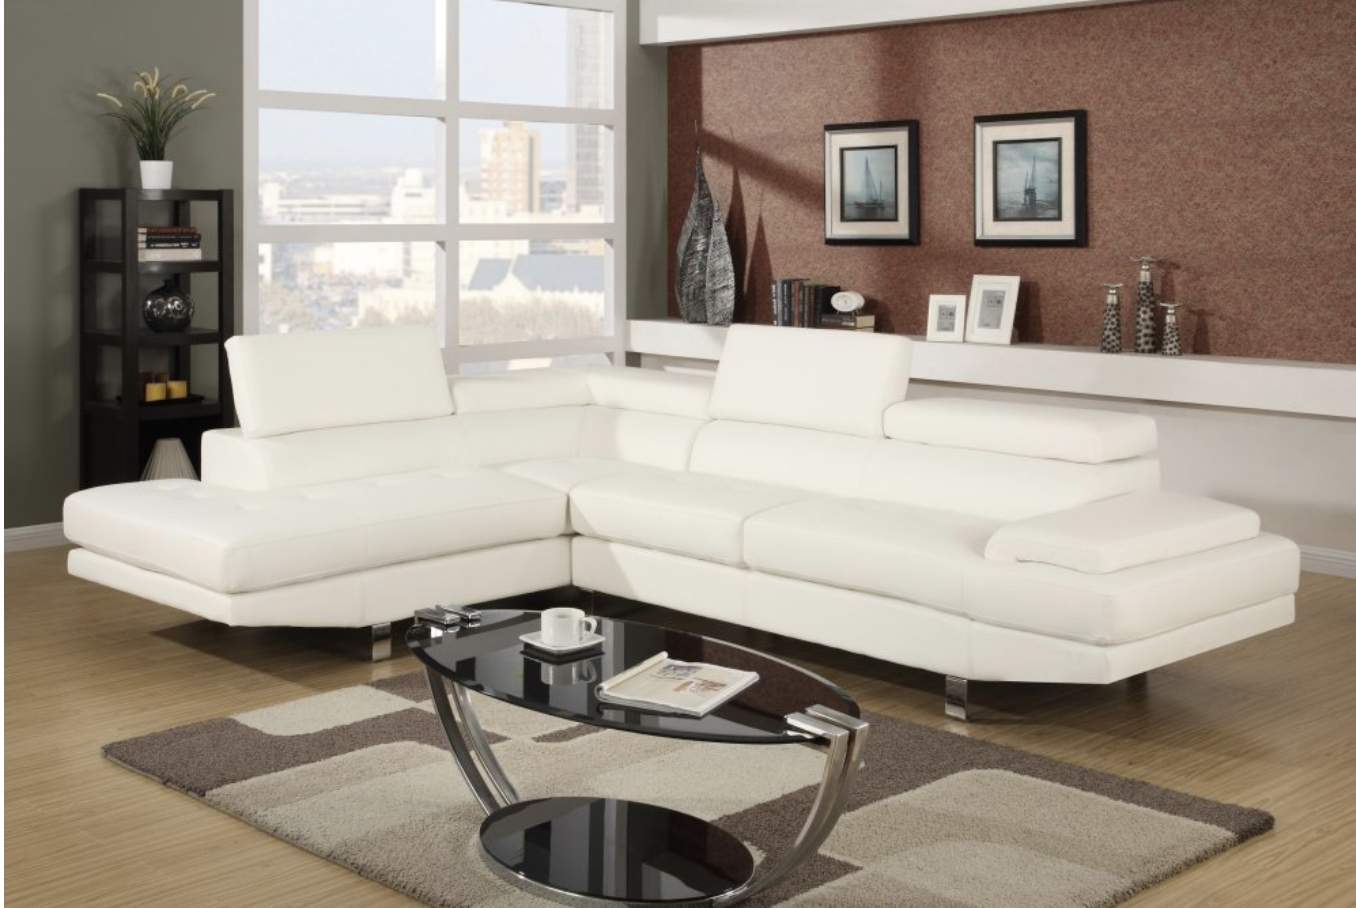 100X80 Sectional Sofas Intended For Fashionable 75 Modern Sectional Sofas For Small Spaces (2018) (View 9 of 15)